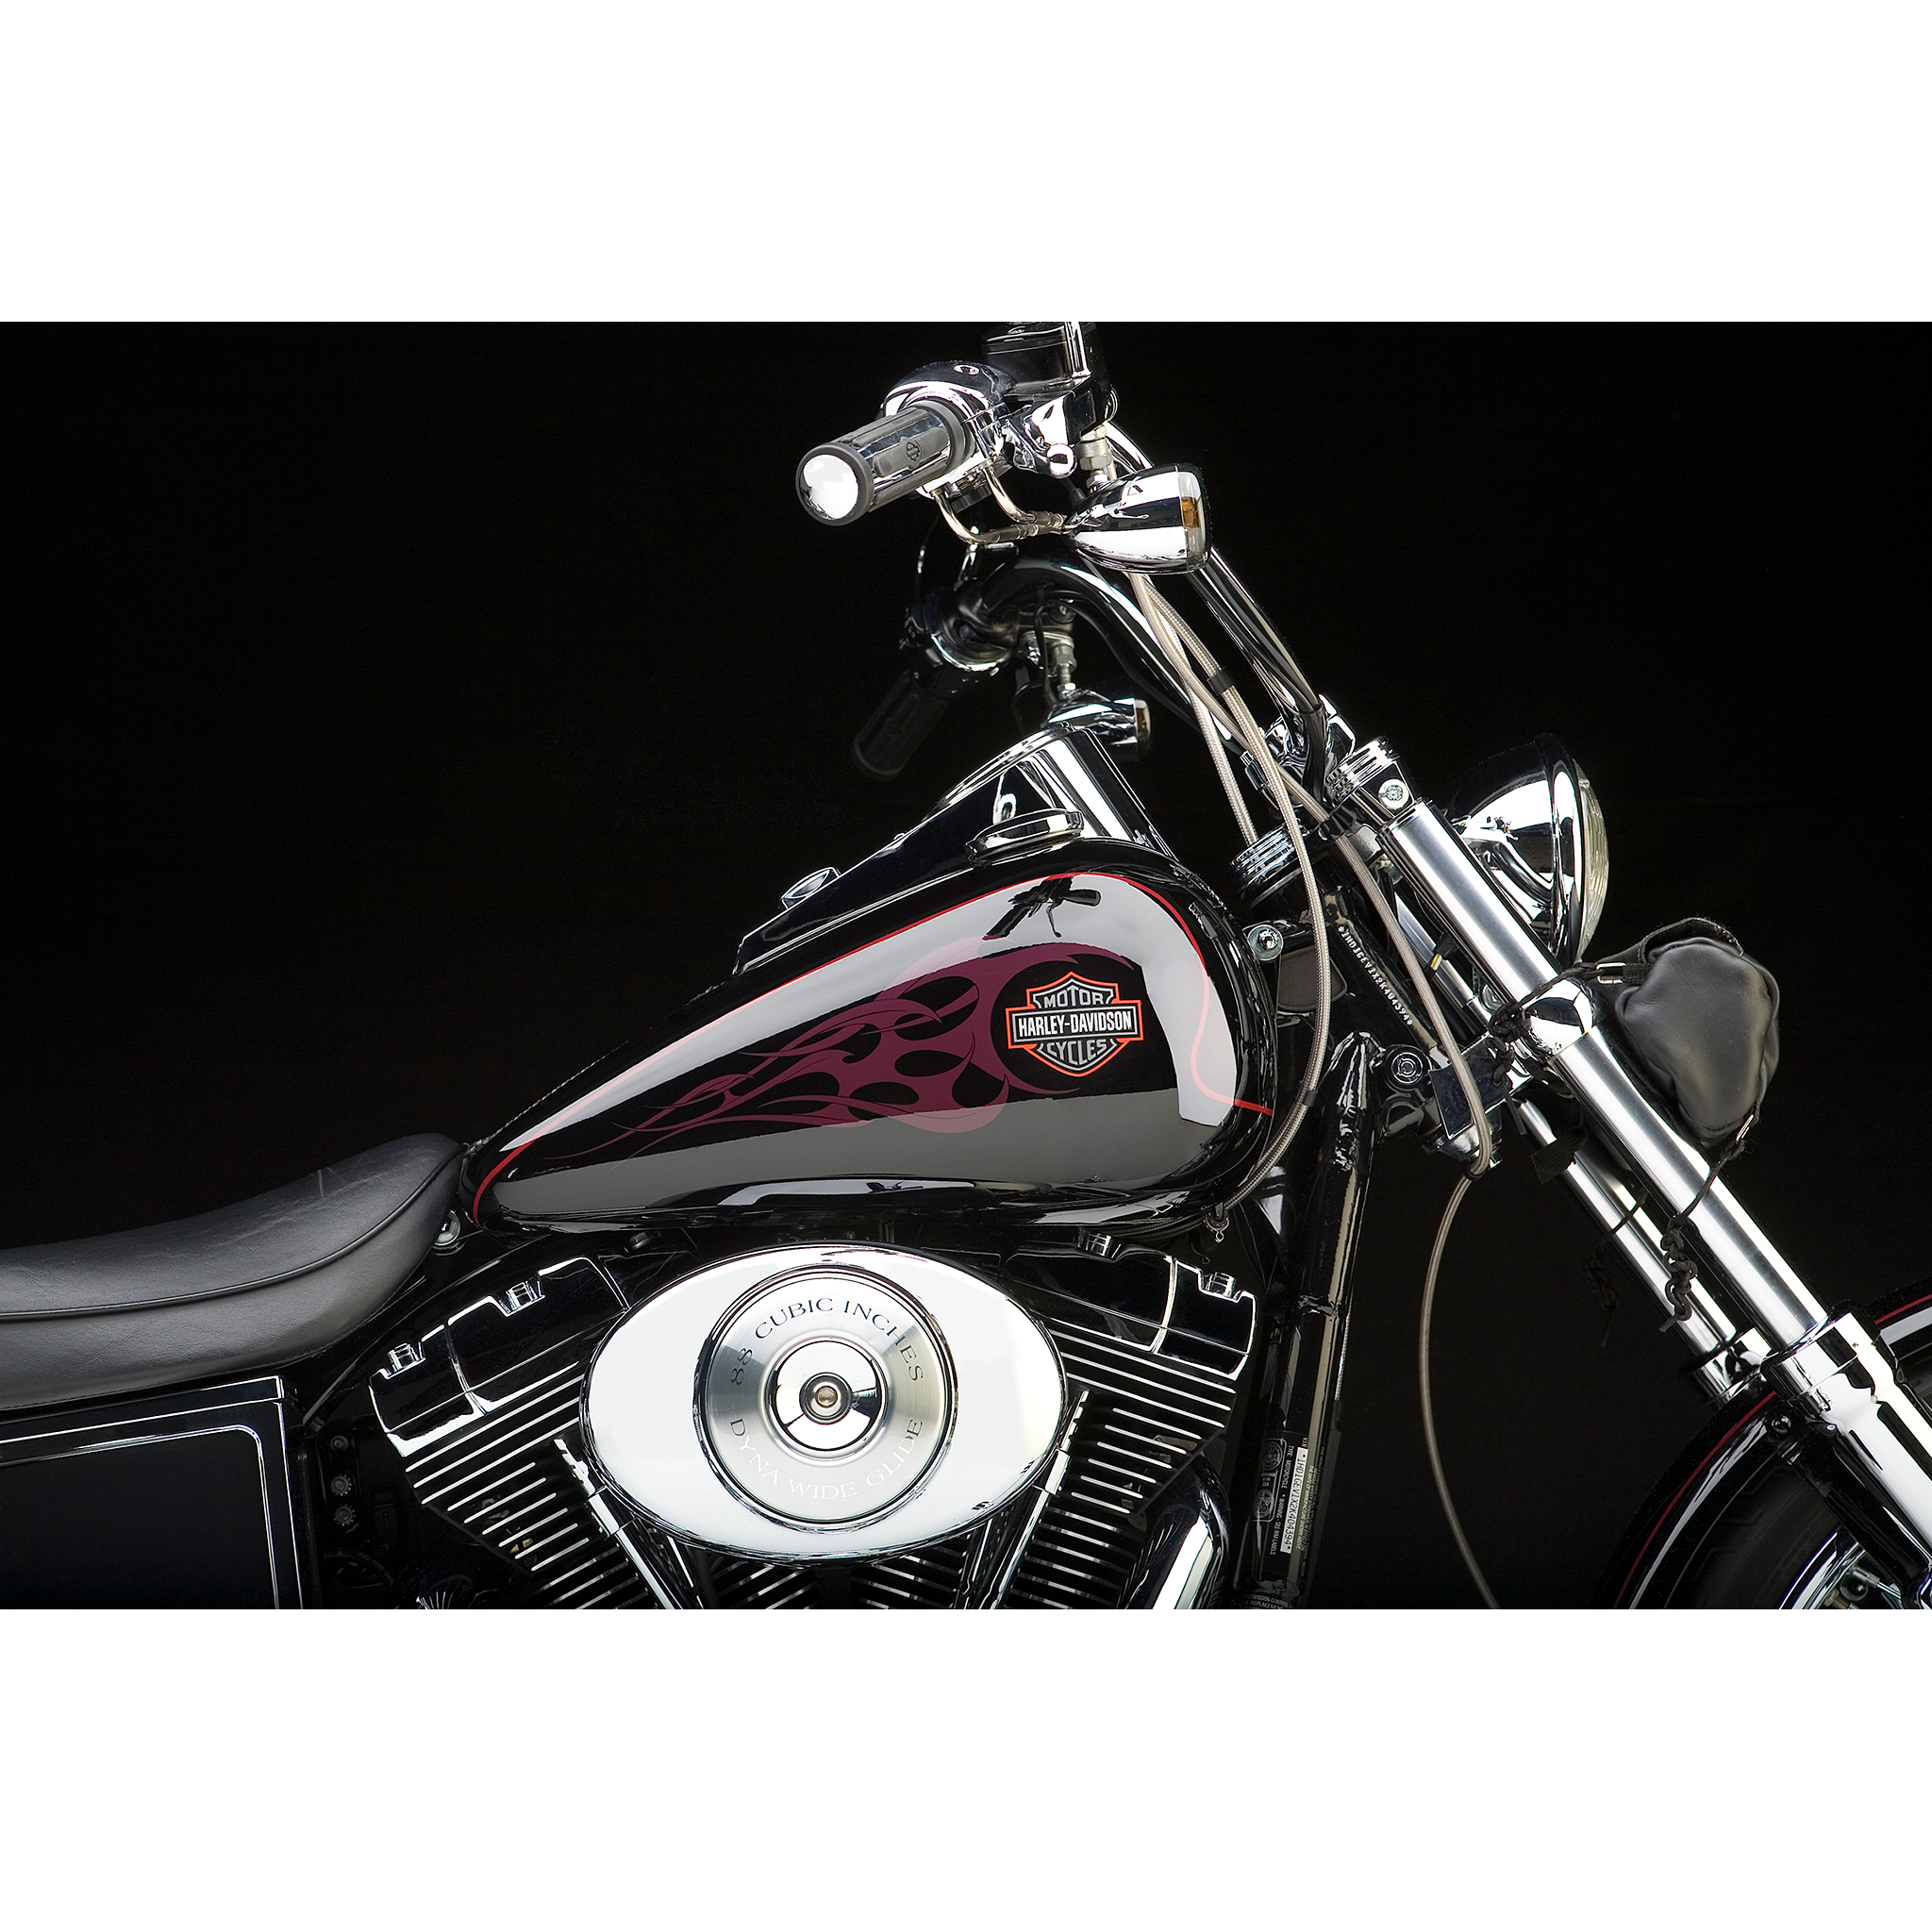 Harley Davidson Motorcycle photographed in the studio